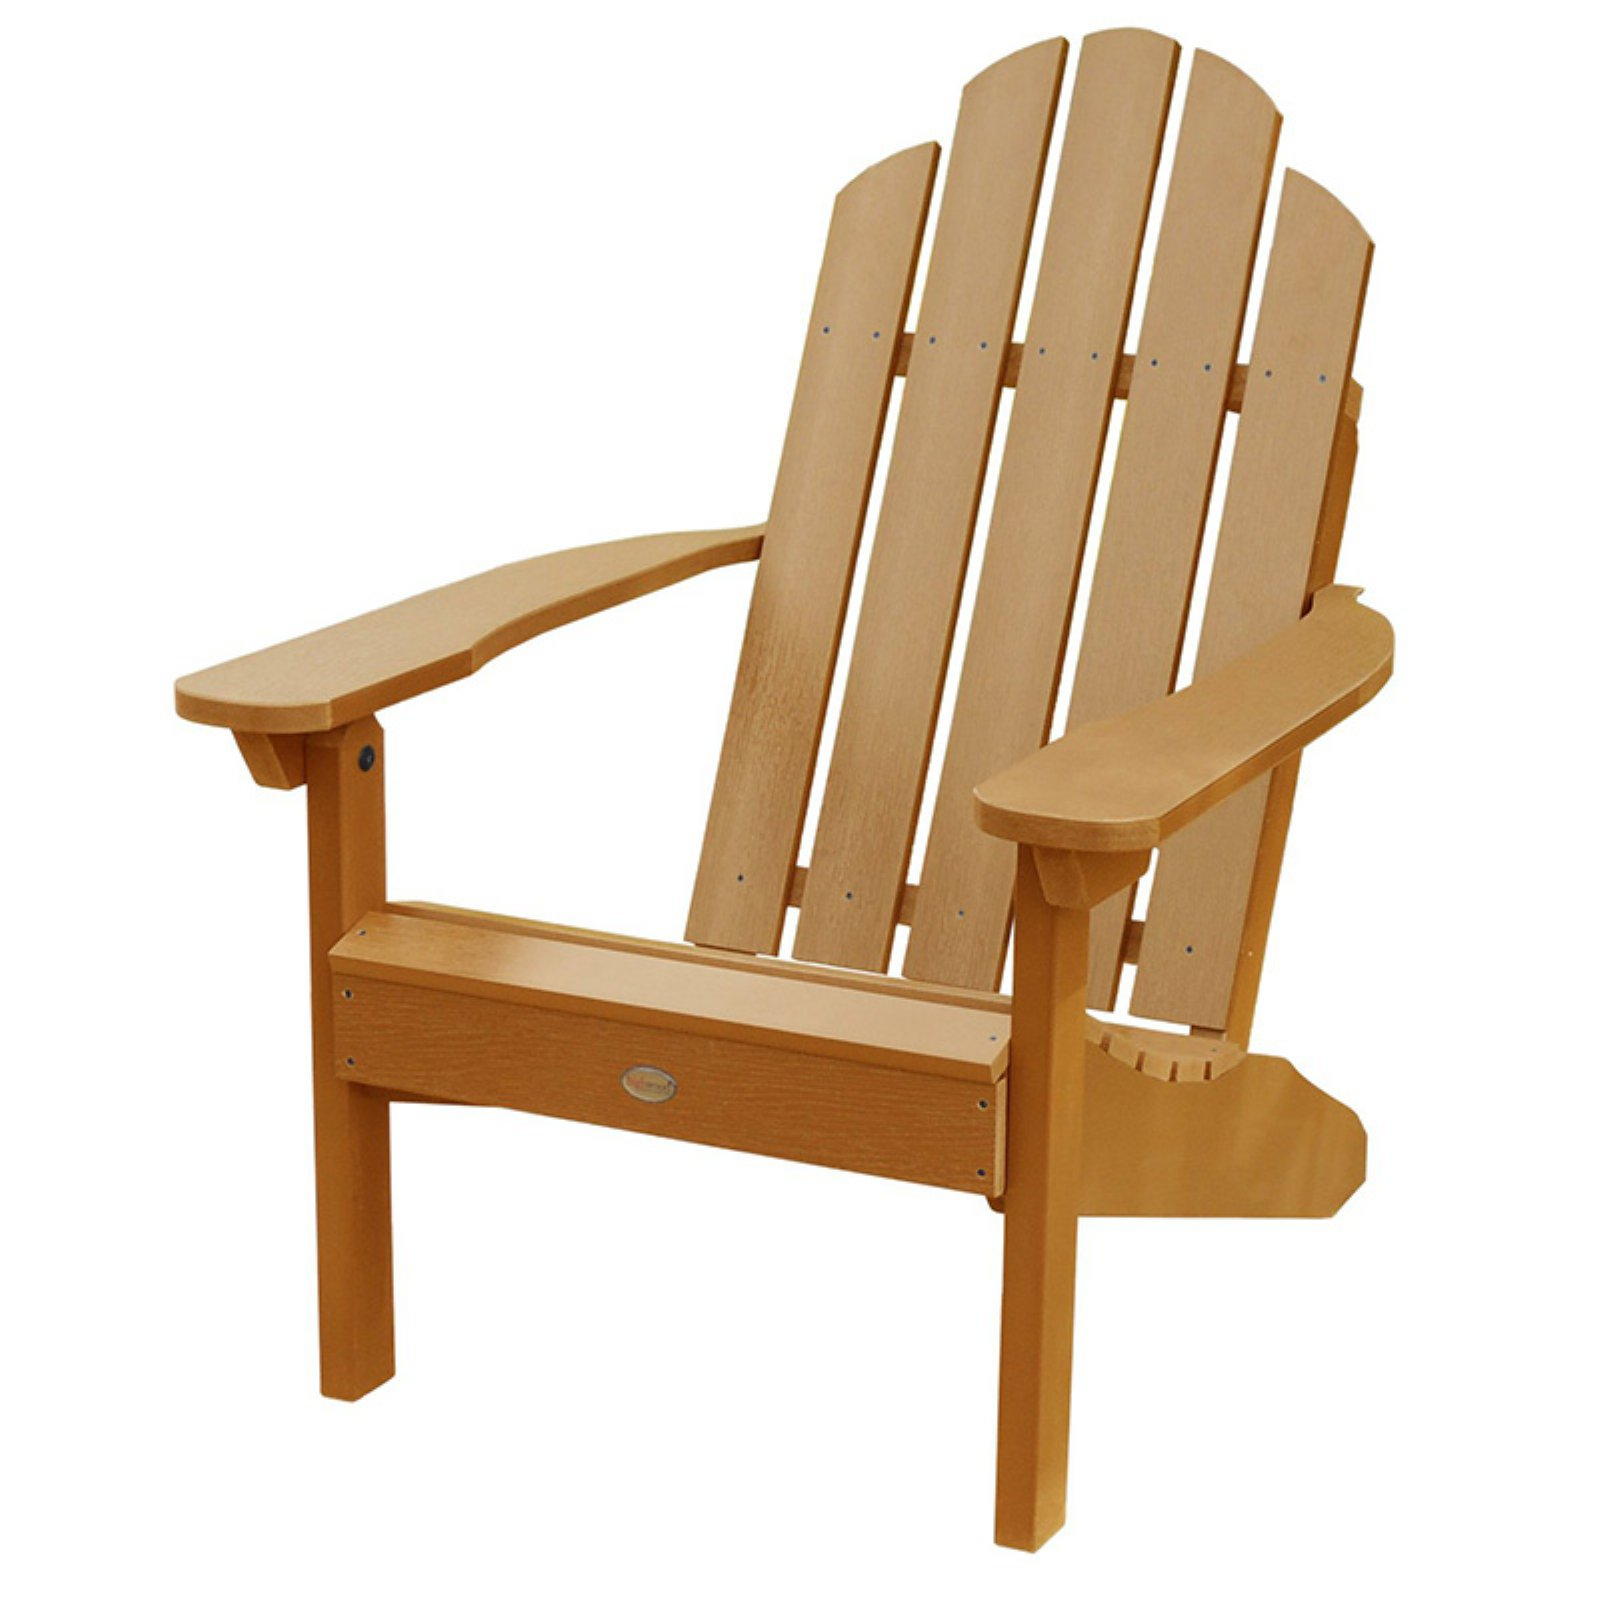 highwood® Classic Westport Adirondack Chair